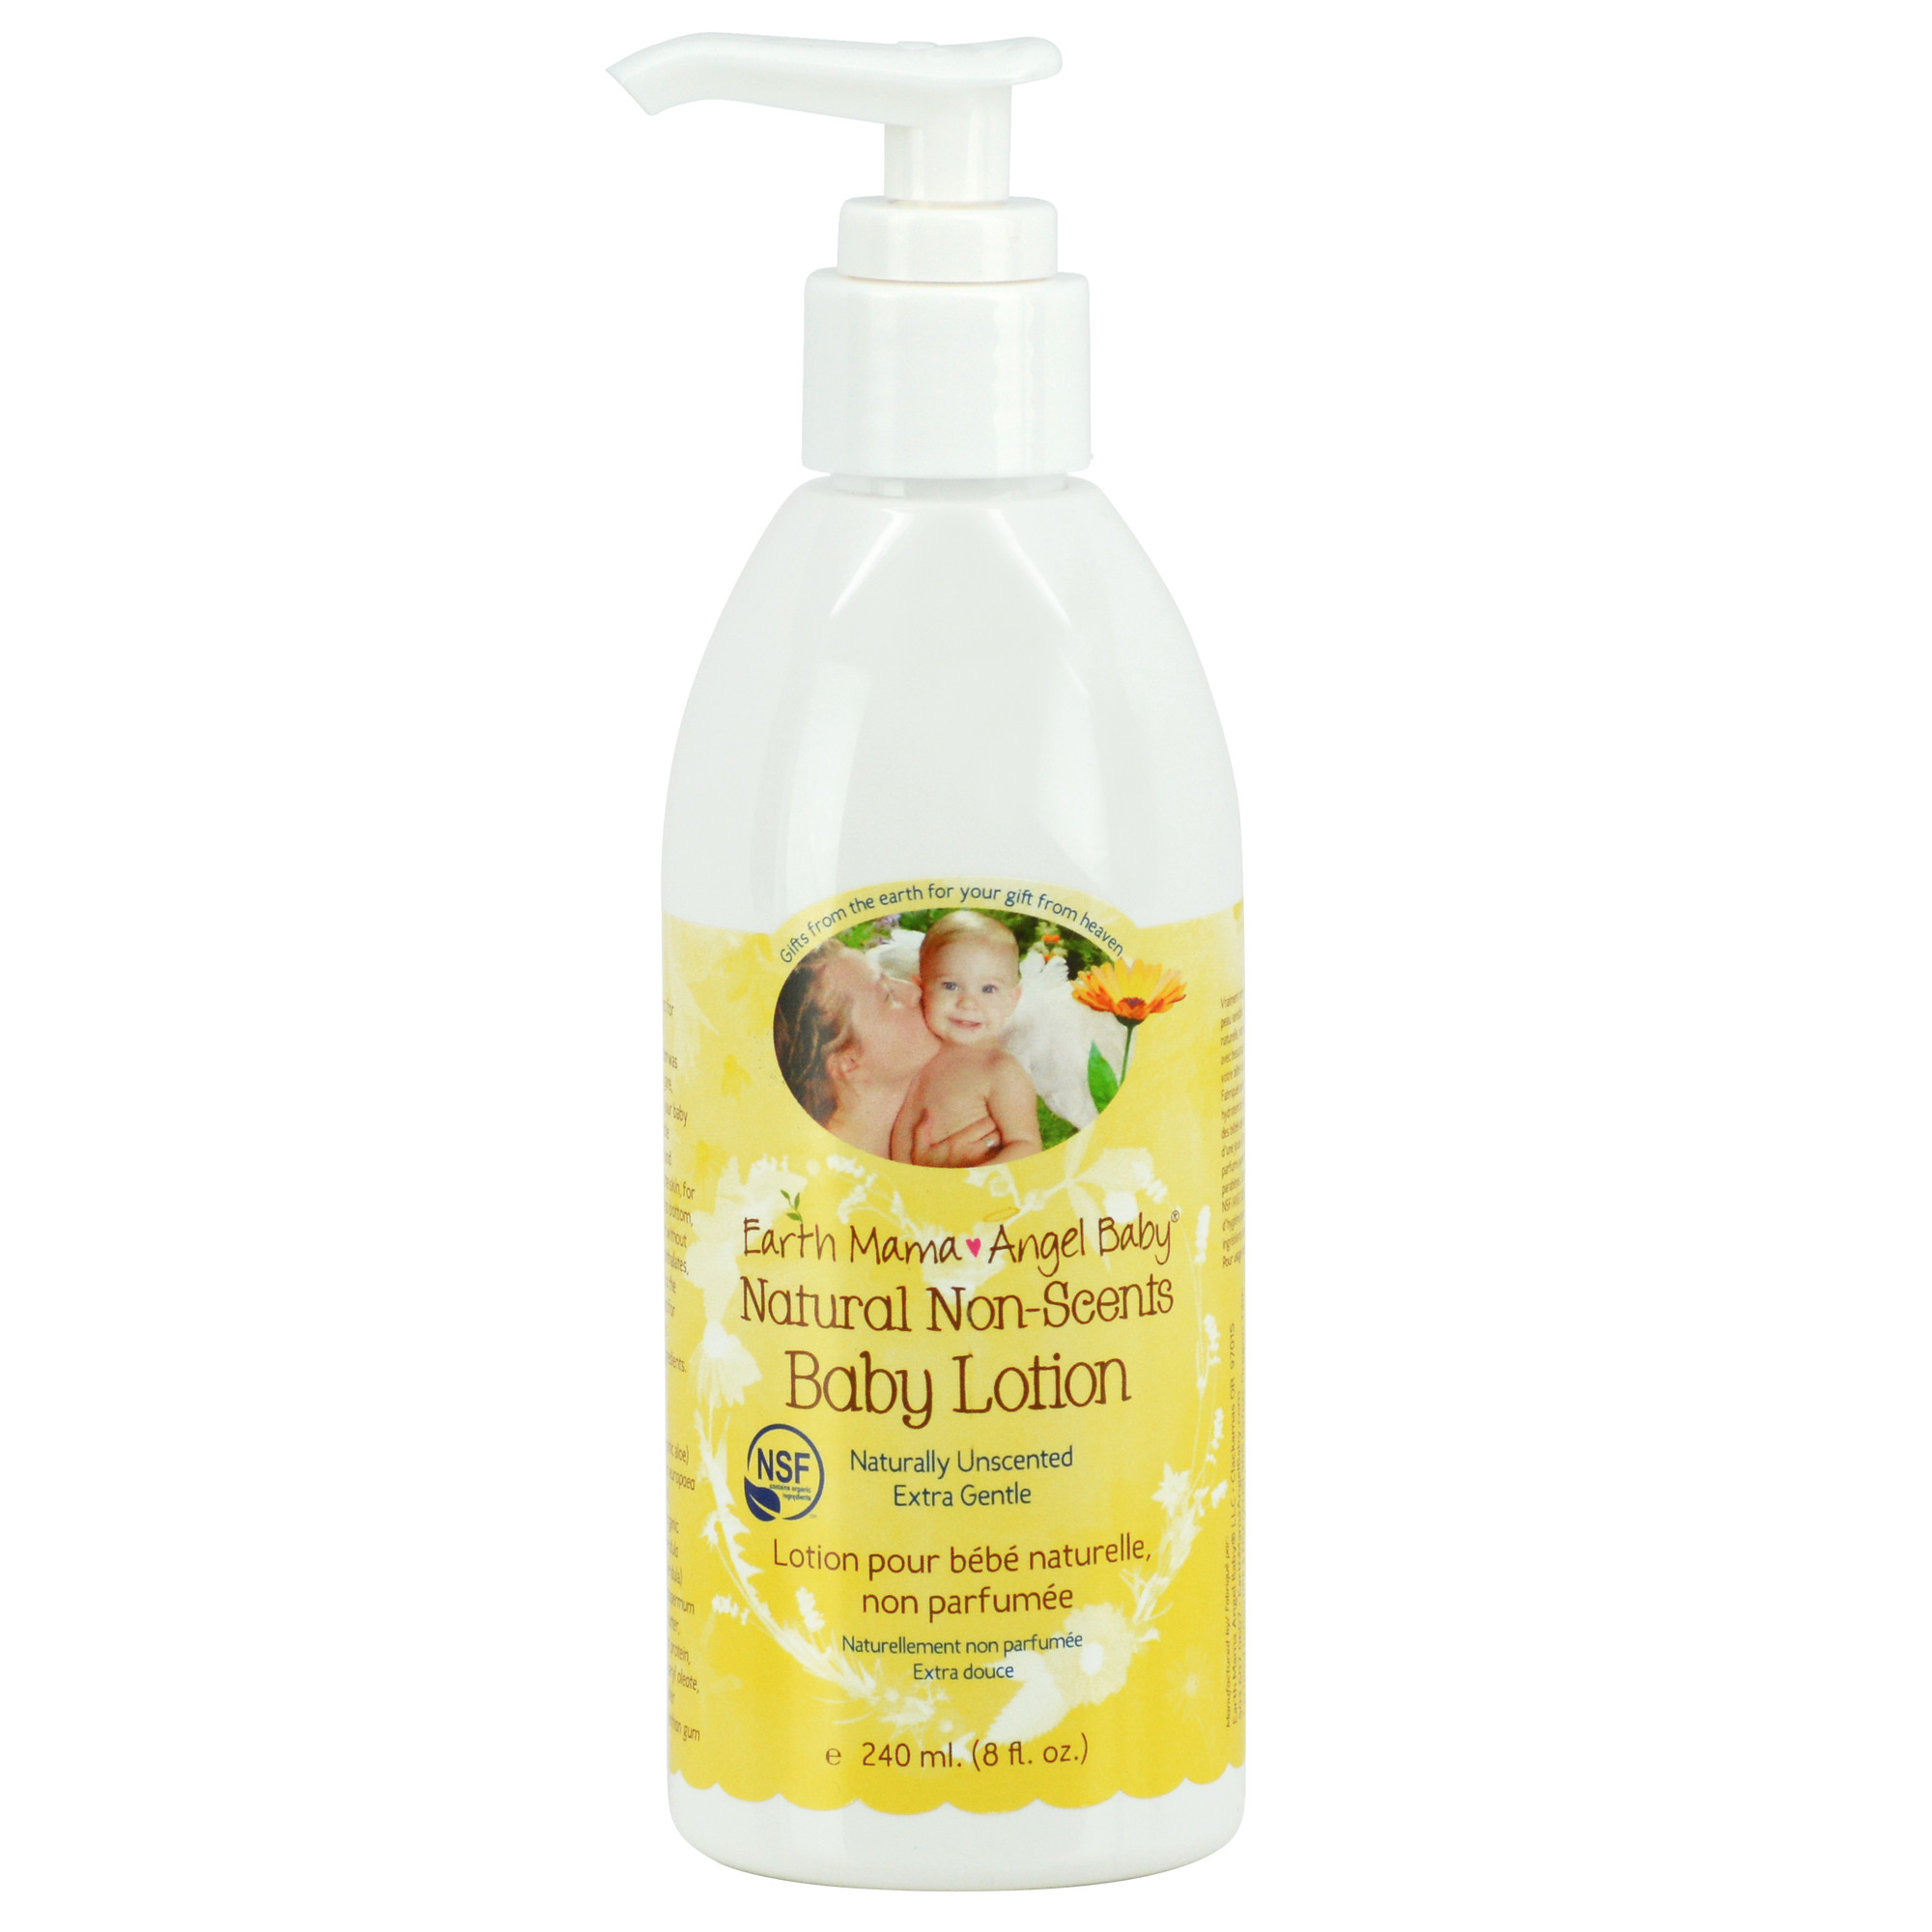 Earth Mama Angel Baby Non-Scents Lotion    $19.95ea    Wants 1